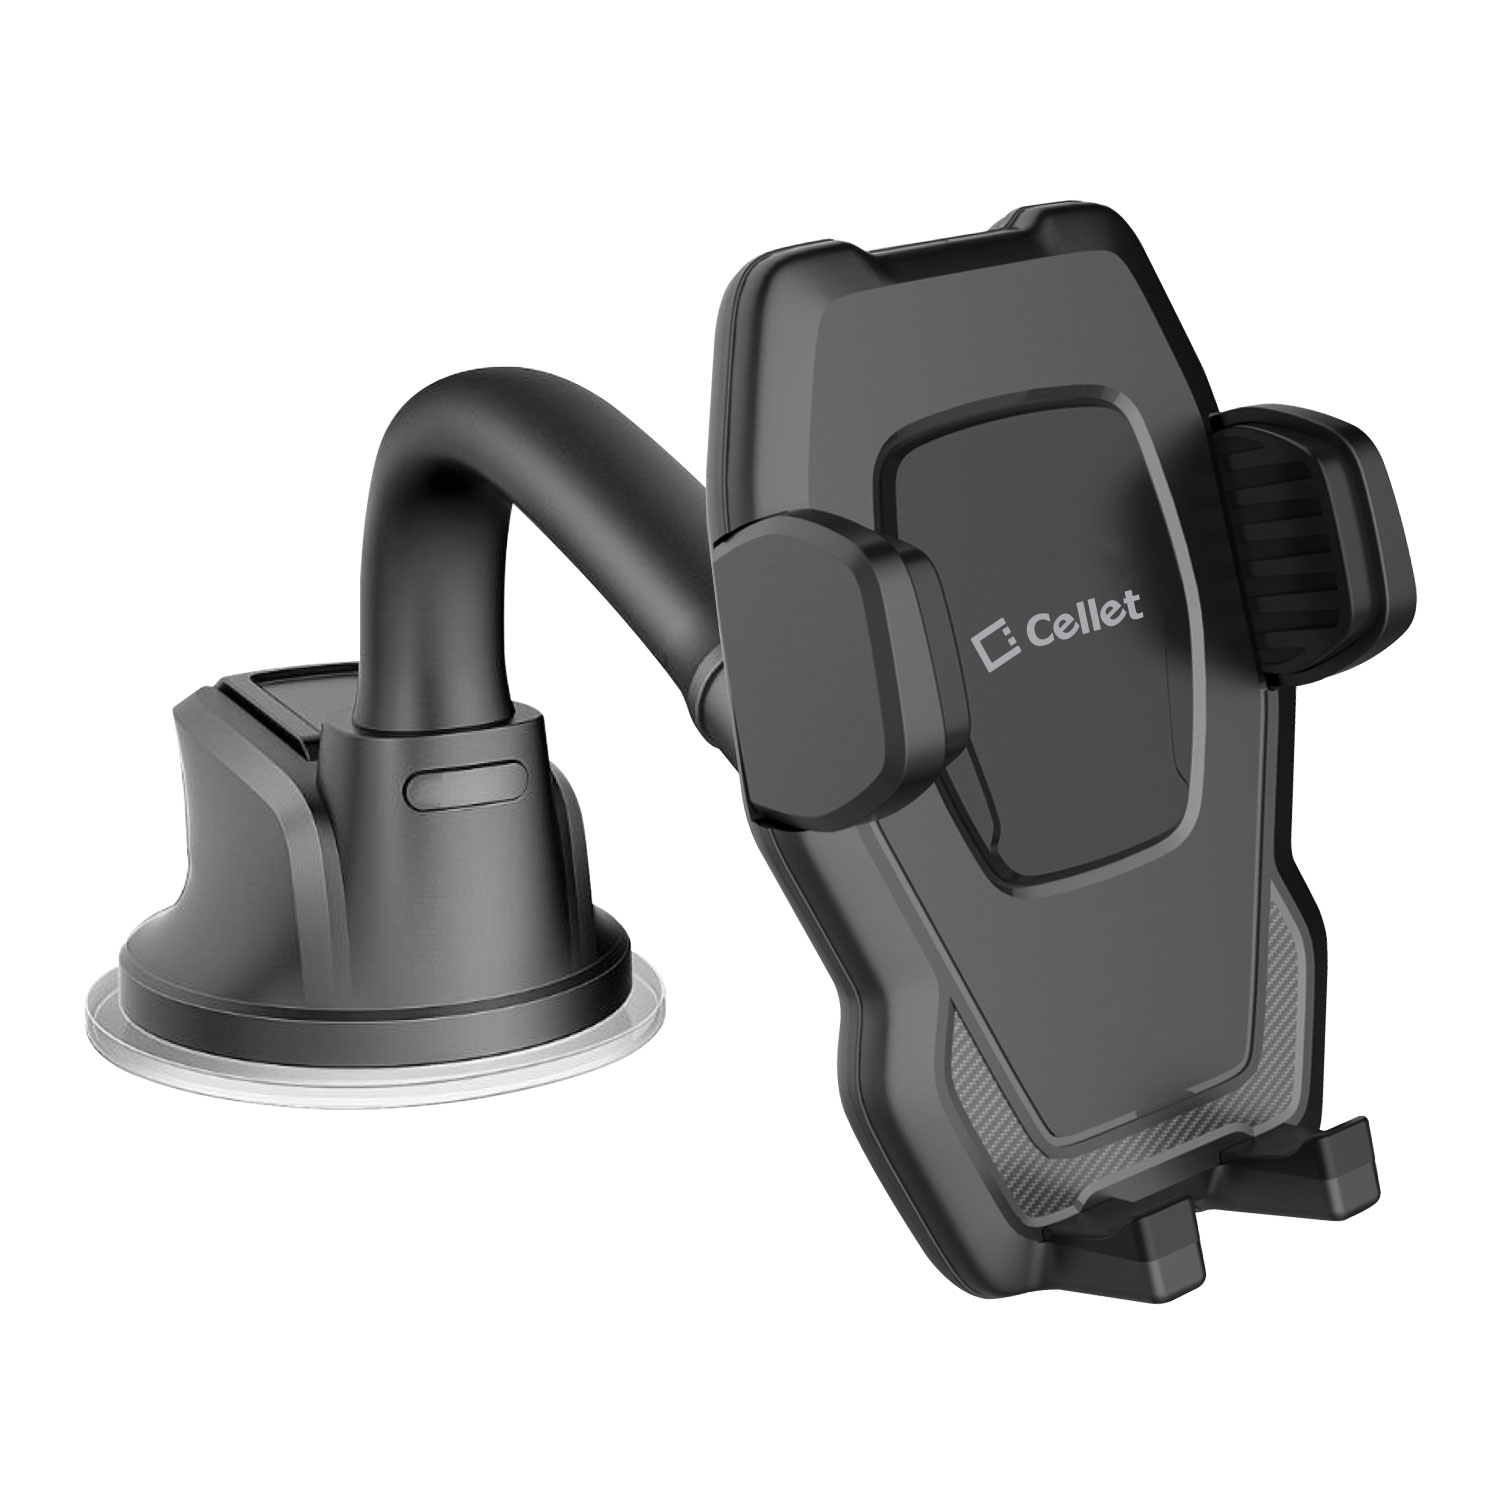 Huawei Honor 5X Windshield Phone Holder Goose Neck Black